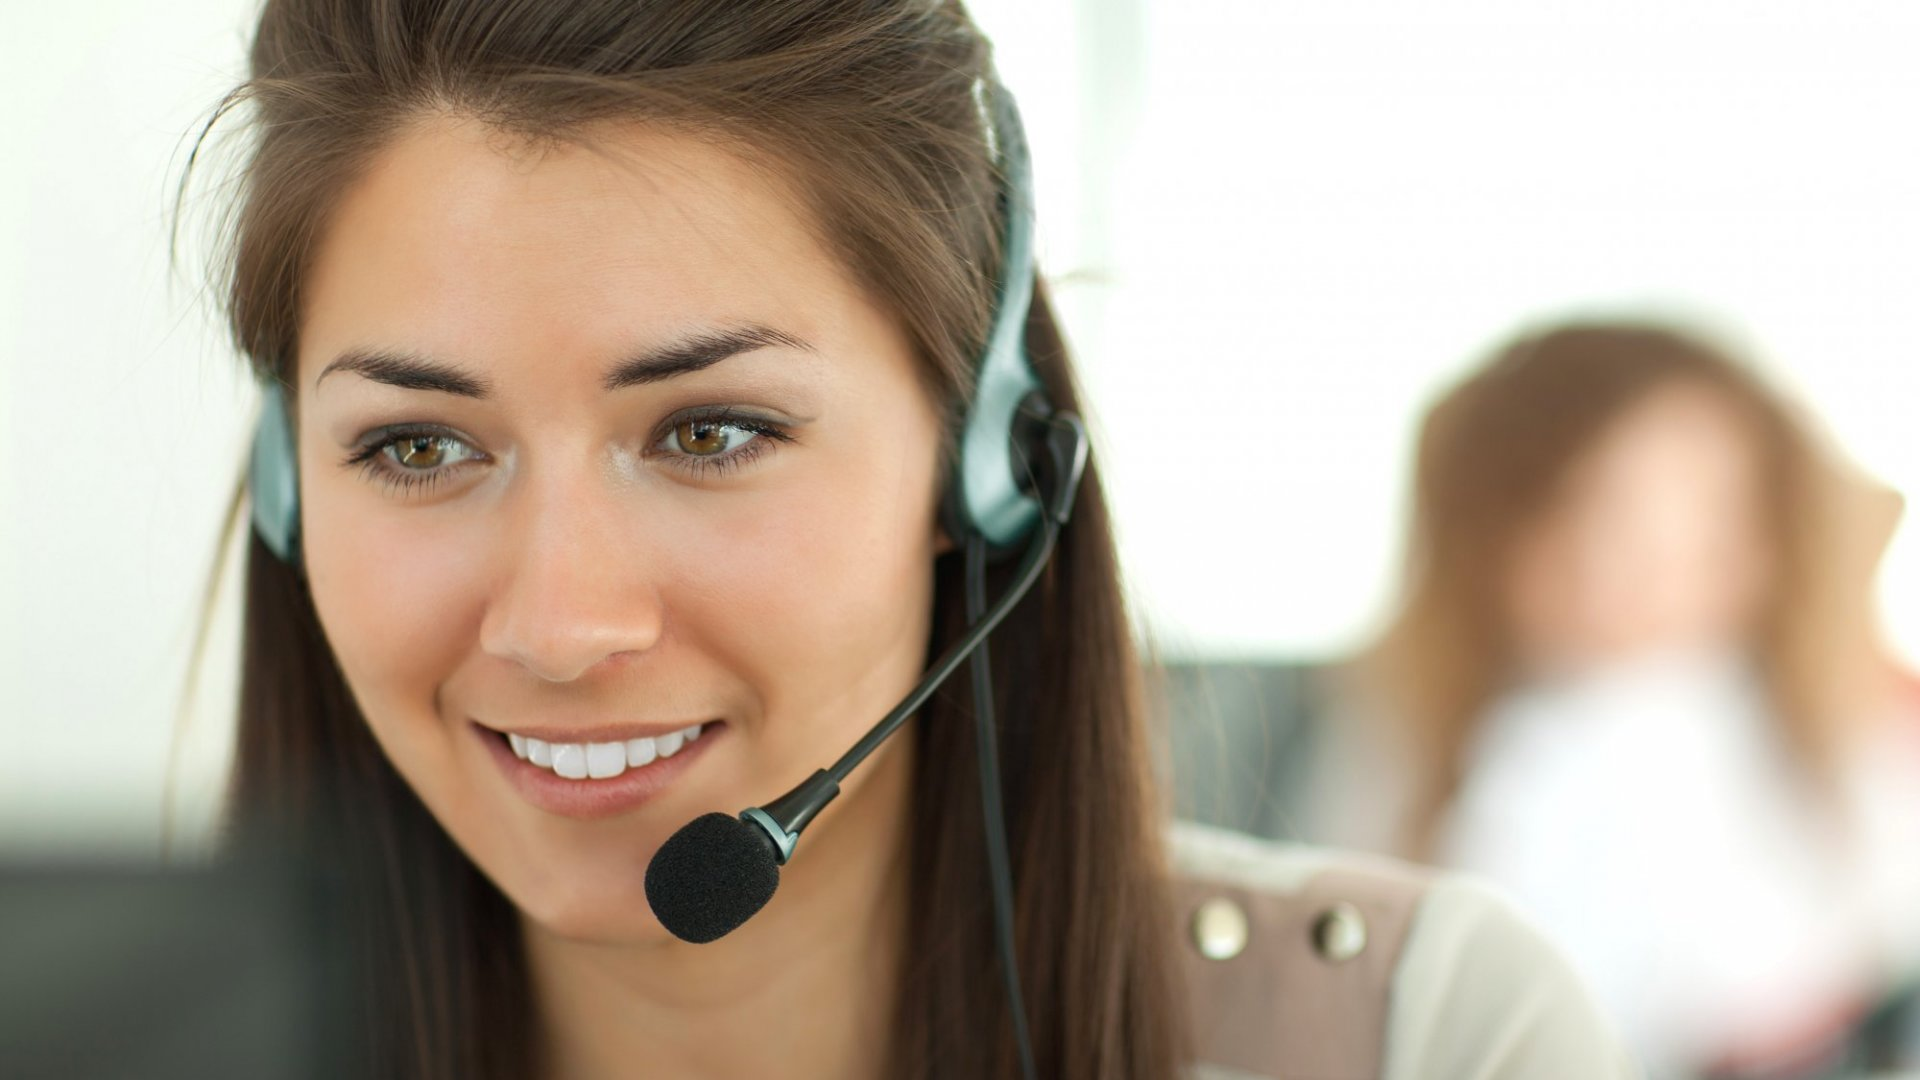 A Creative Way to Increase the Success Rate of Cold Calling